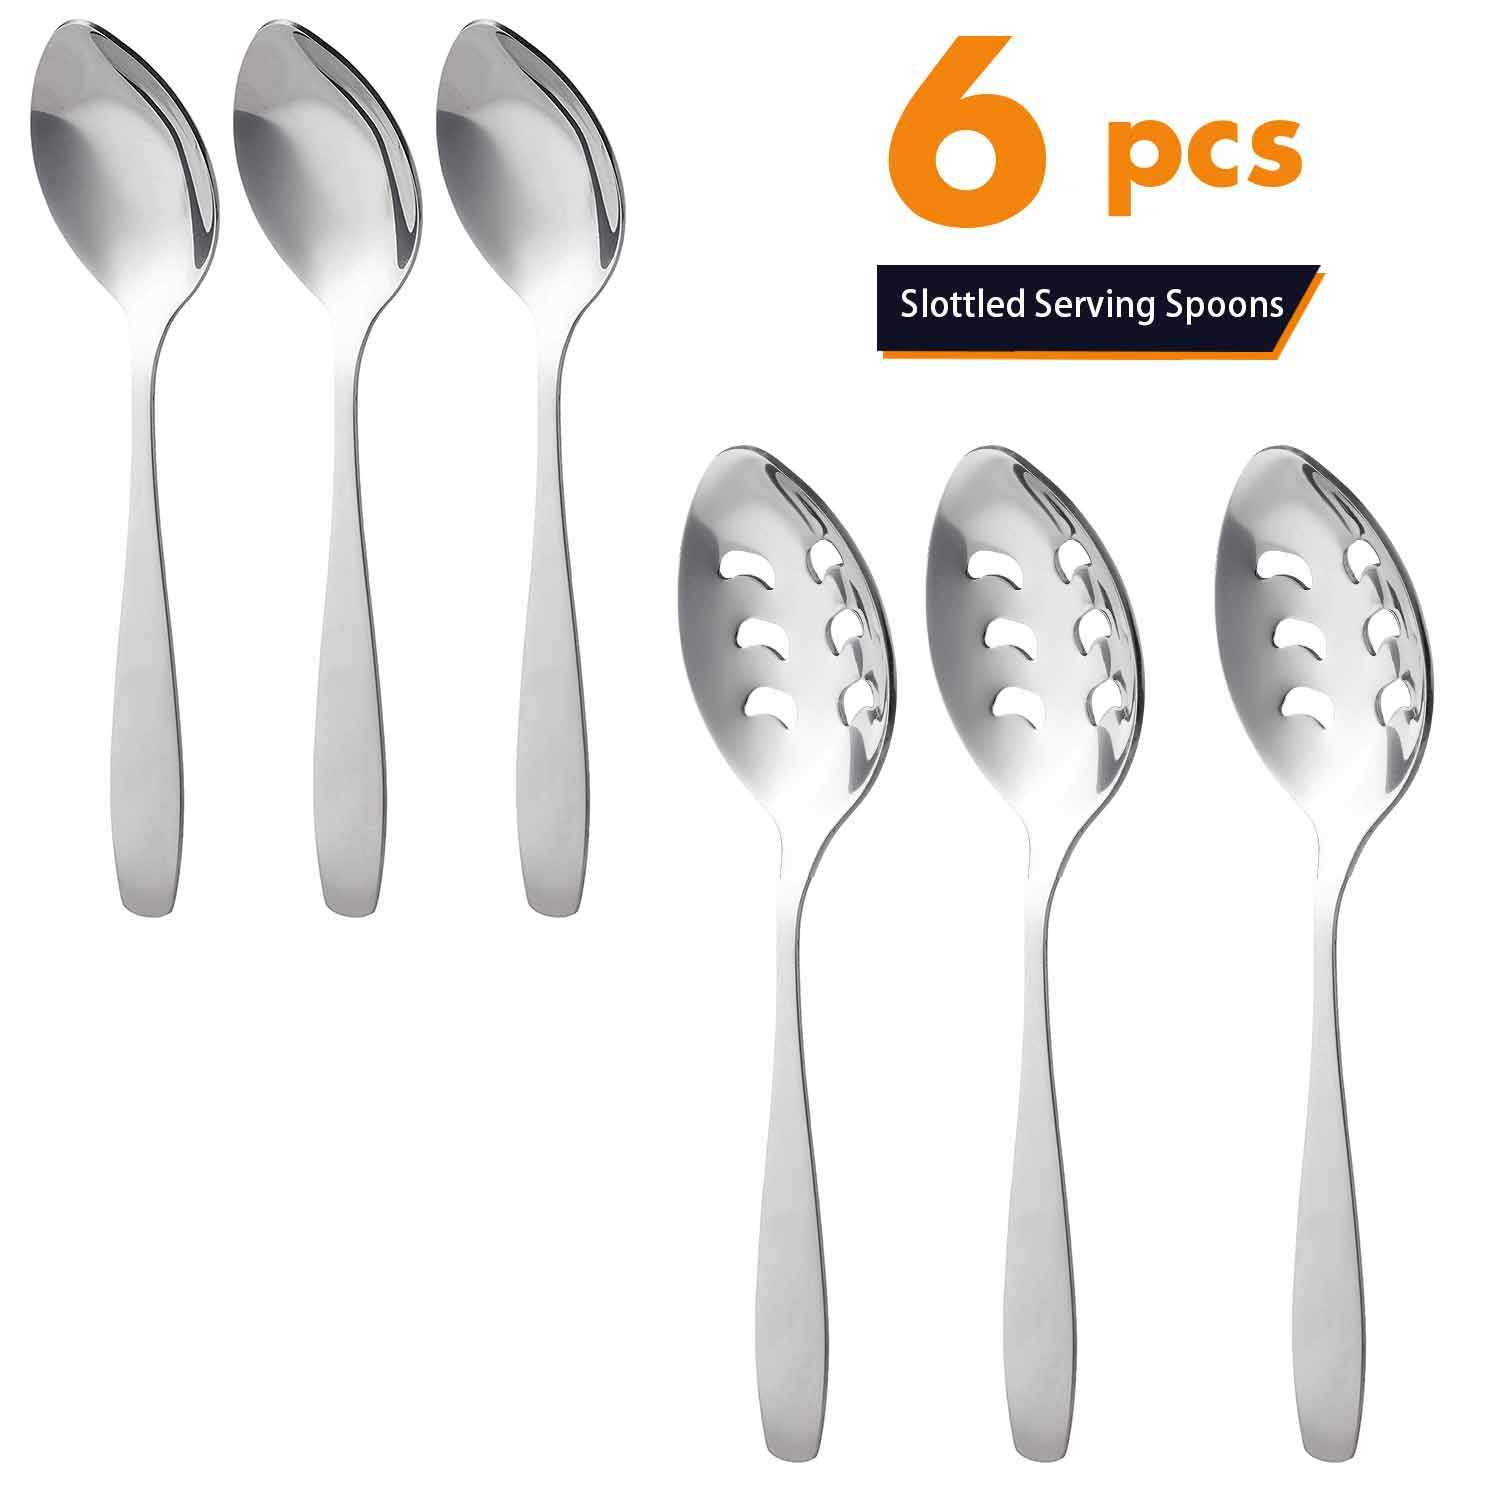 Mirror Polish Slotted Tongue Spoon Cater 6Pcs Flatware Sets Metal Buffet Serving Stainless Steel Spoon Set For Party Restaurant